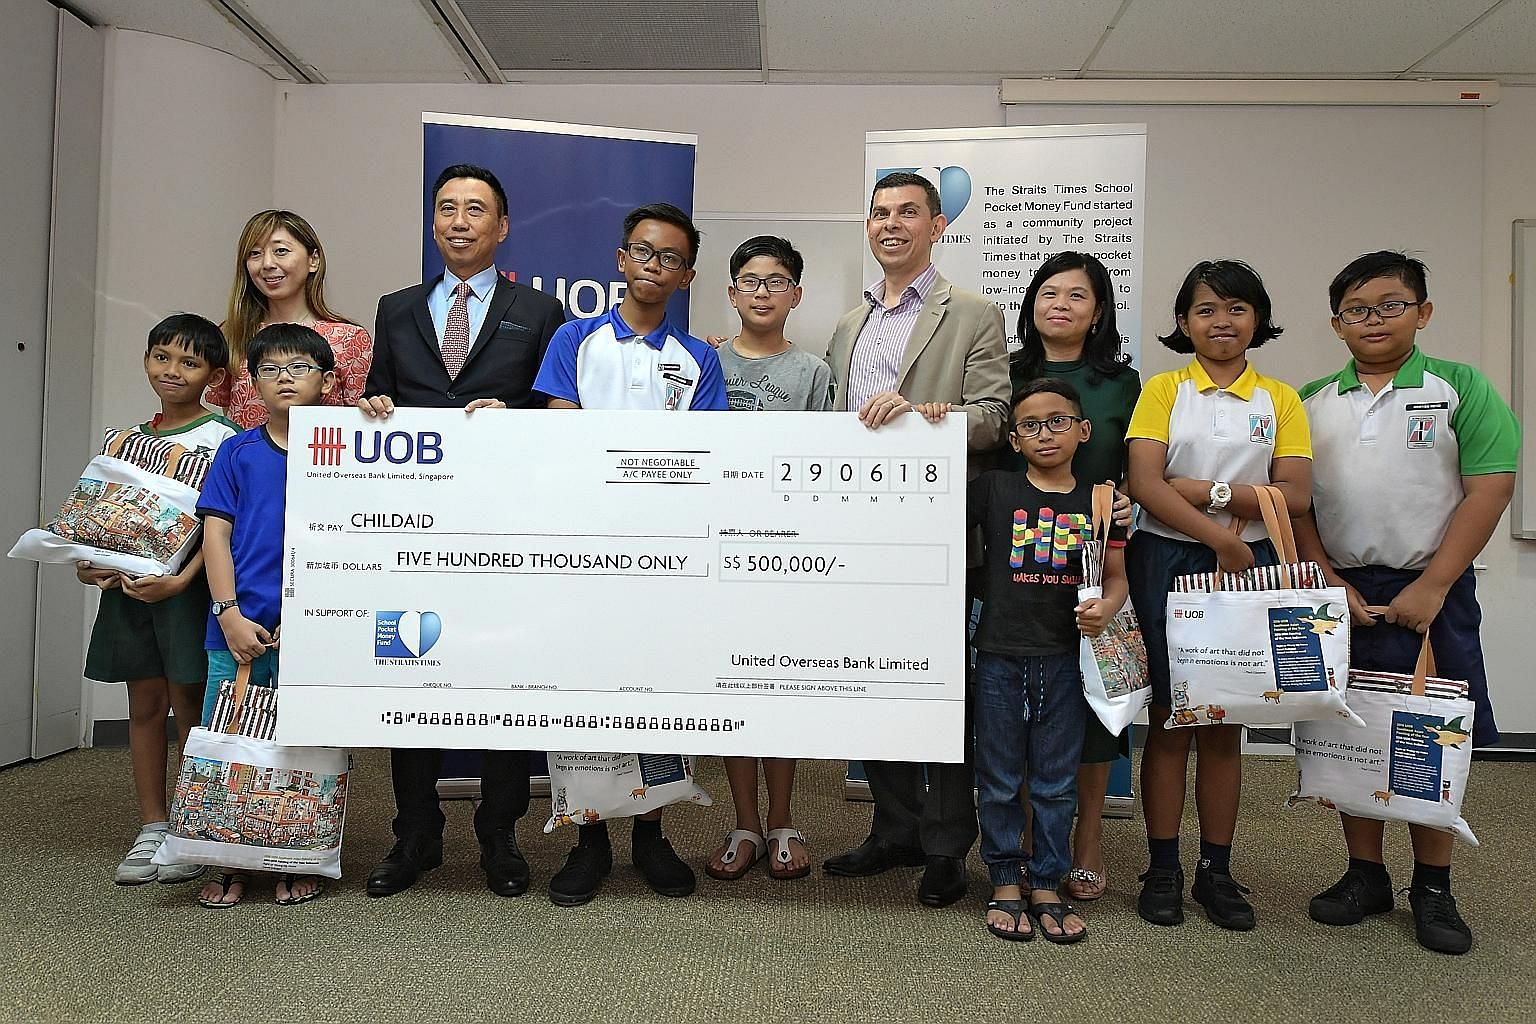 Seven beneficiaries of The Straits Times School Pocket Money Fund posed for a picture at yesterday's cheque presentation event with (from left) ST executive editor Sumiko Tan, Mr Eric Tham, Mr Warren Fernandez and STSPMF general manager Tan Bee Heong